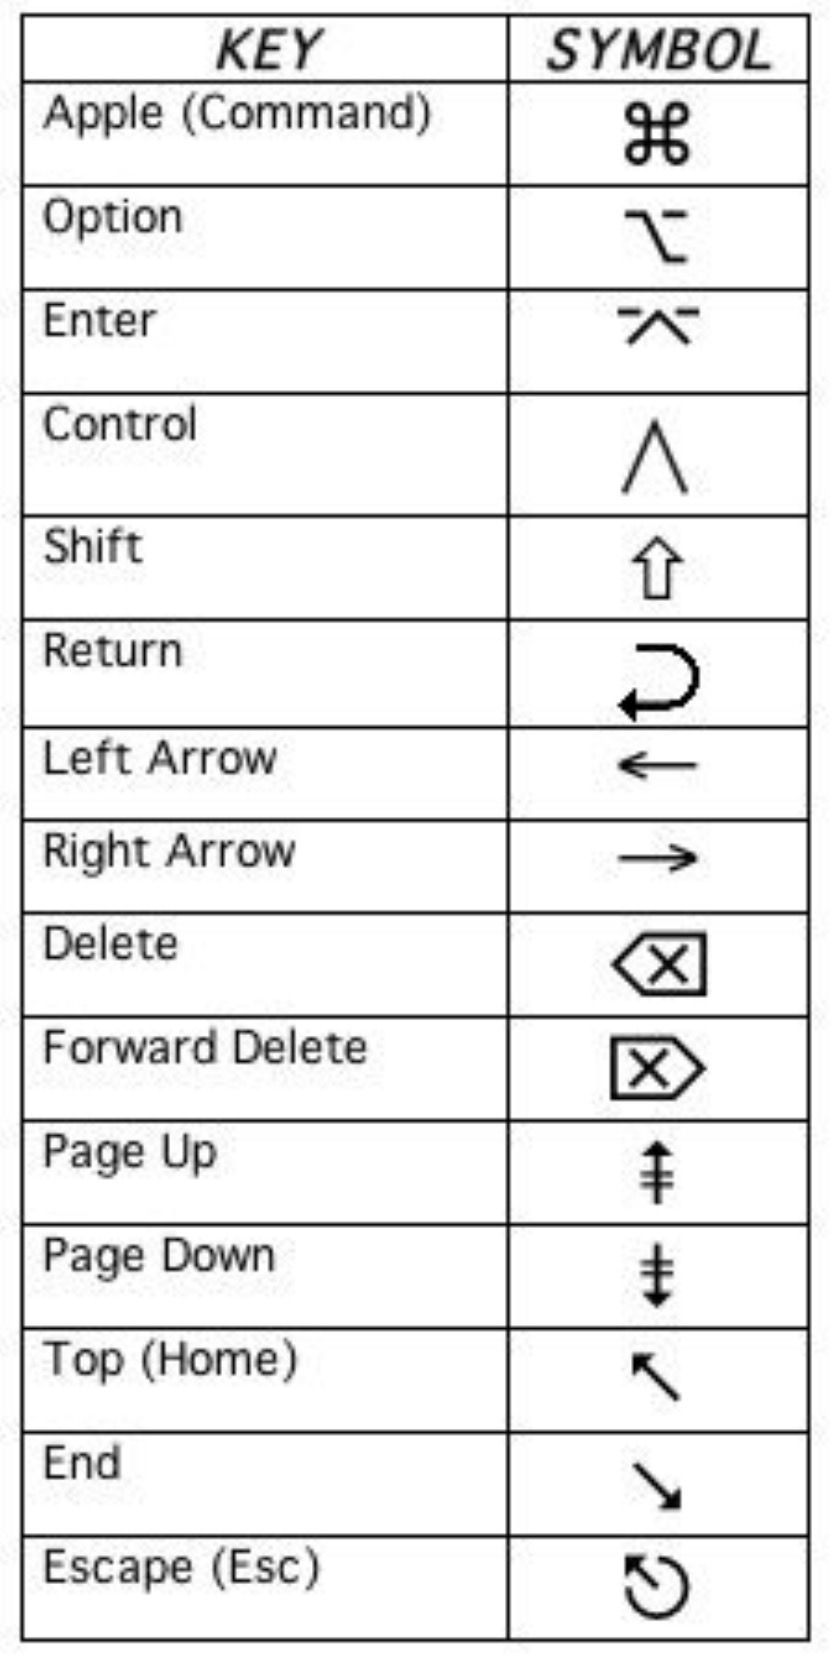 Key Symbols Print This Mac Keyboard Shortcuts Computer Keyboard Shortcuts Macbook Shortcuts